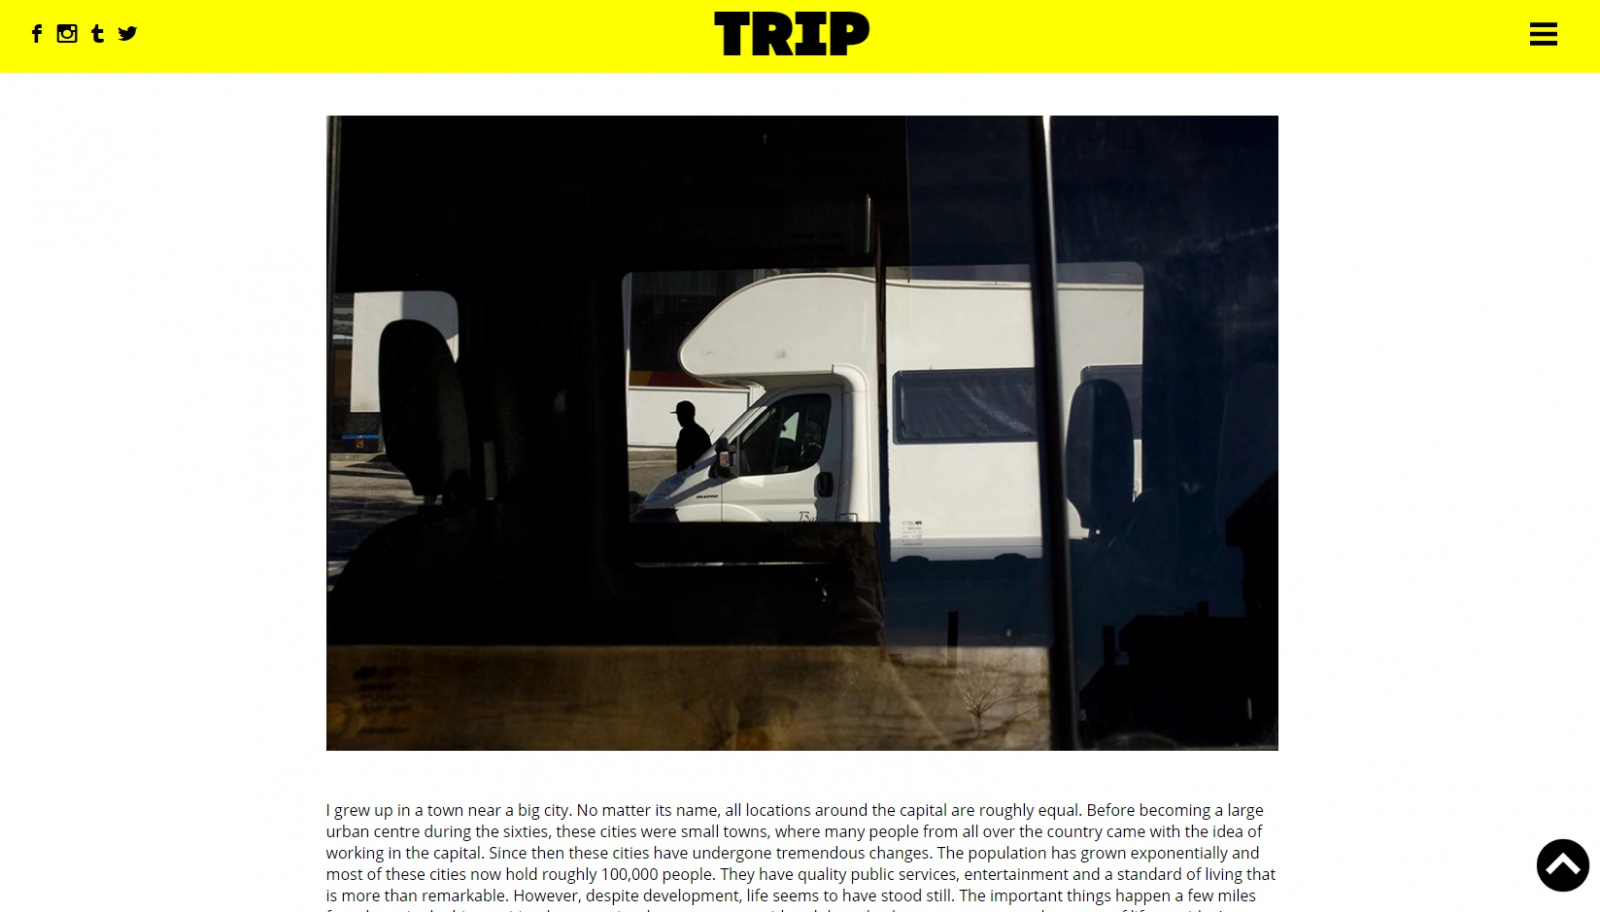 Art and Documentary Photography - Loading TripMagGhost_World.jpg